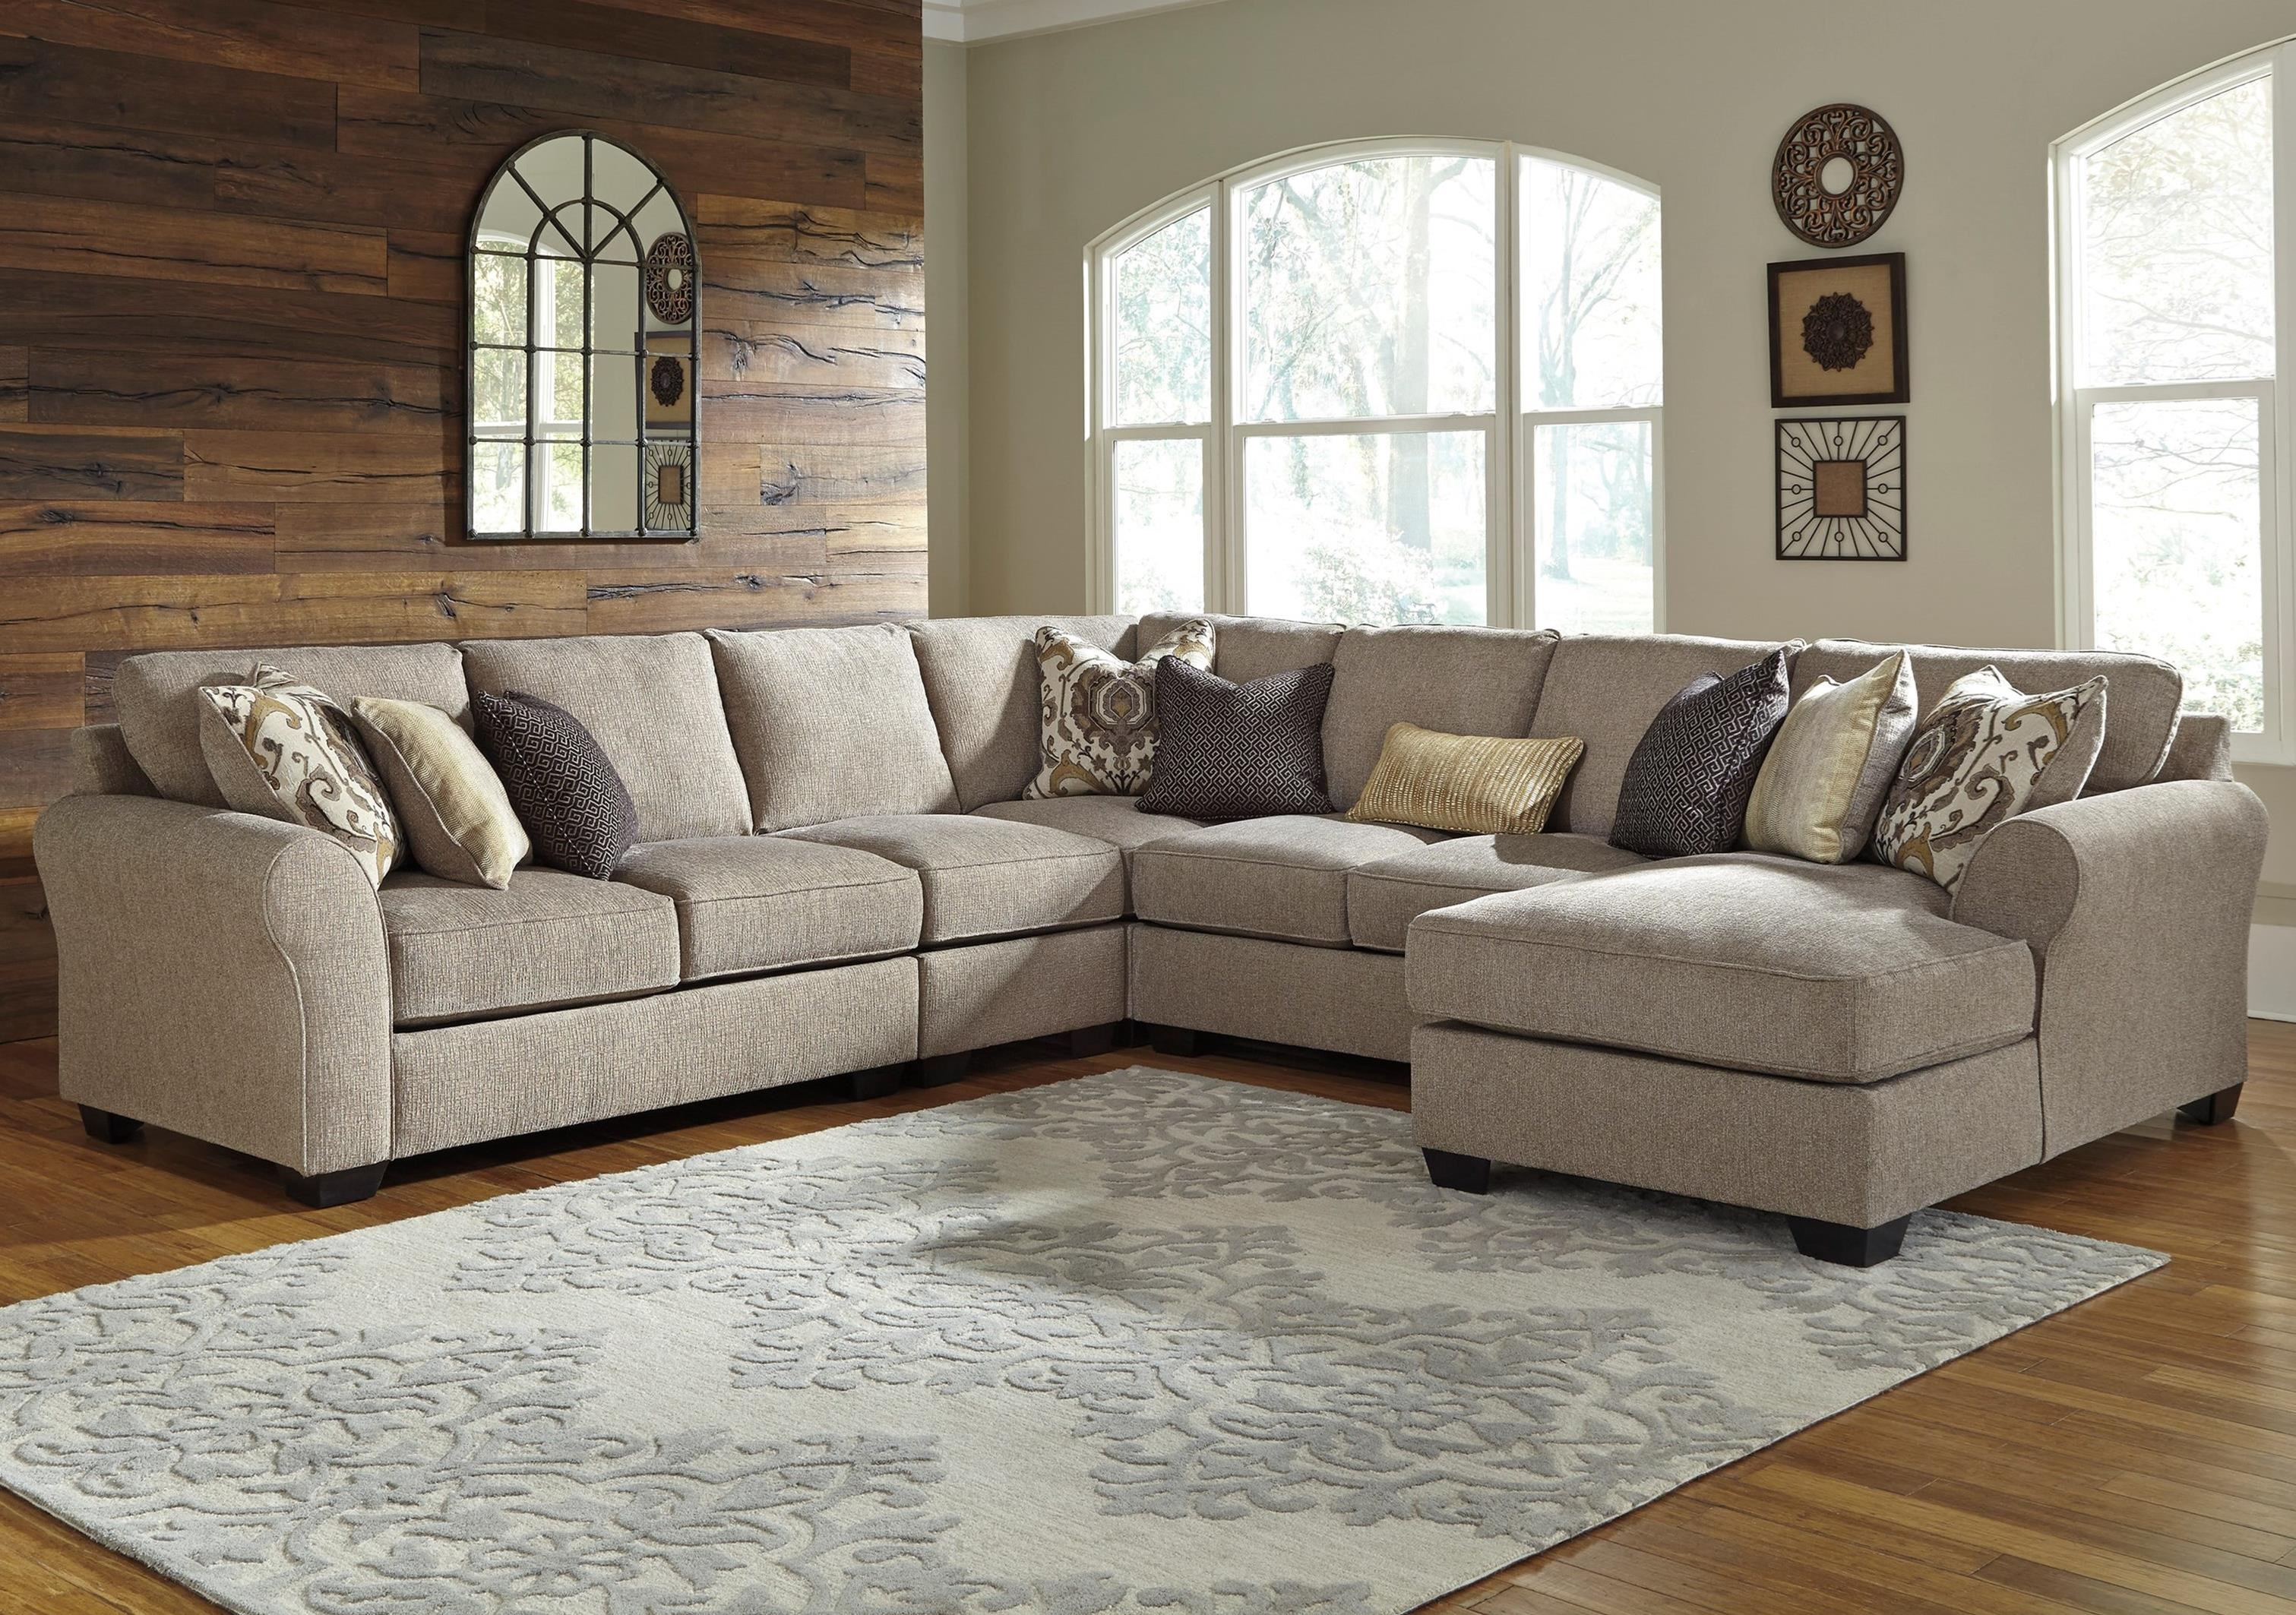 Benchcraft Pantomine 5-Piece Sectional with Right Chaise | Boulevard Home  Furnishings | Sectional Sofas